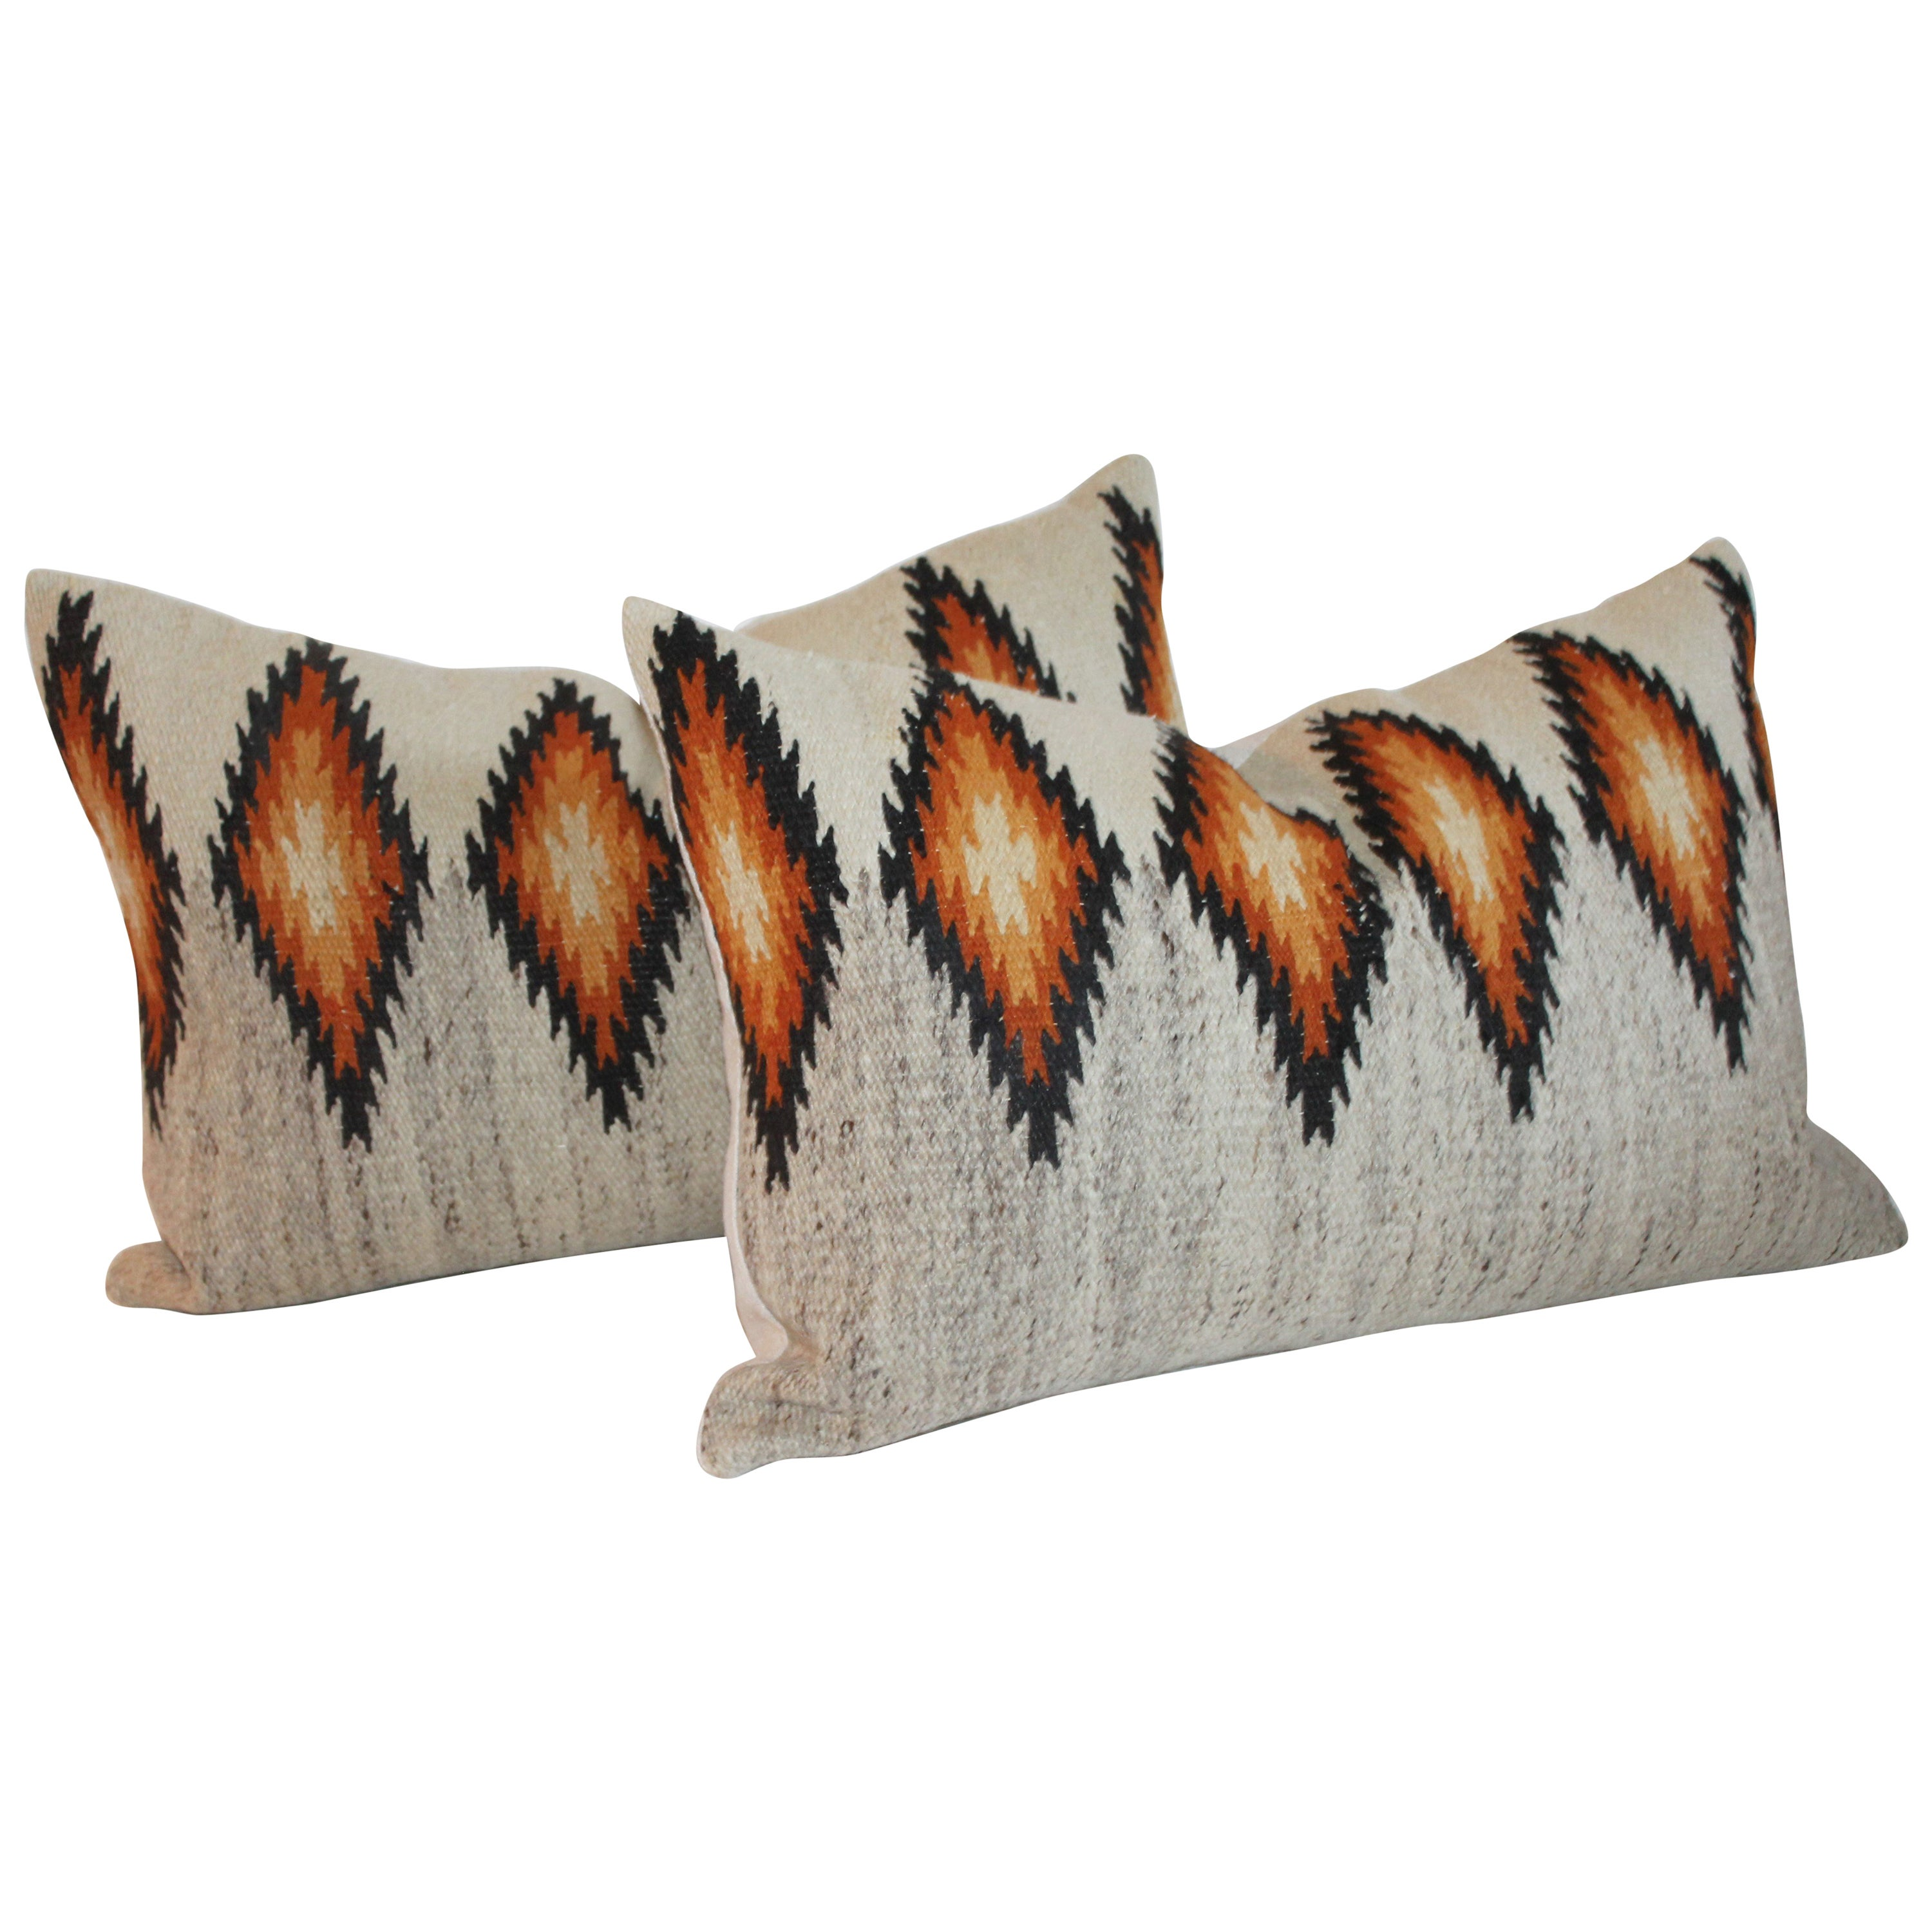 Navajo Indian Eye Dazzler Weaving Bolster Pillows, Pair